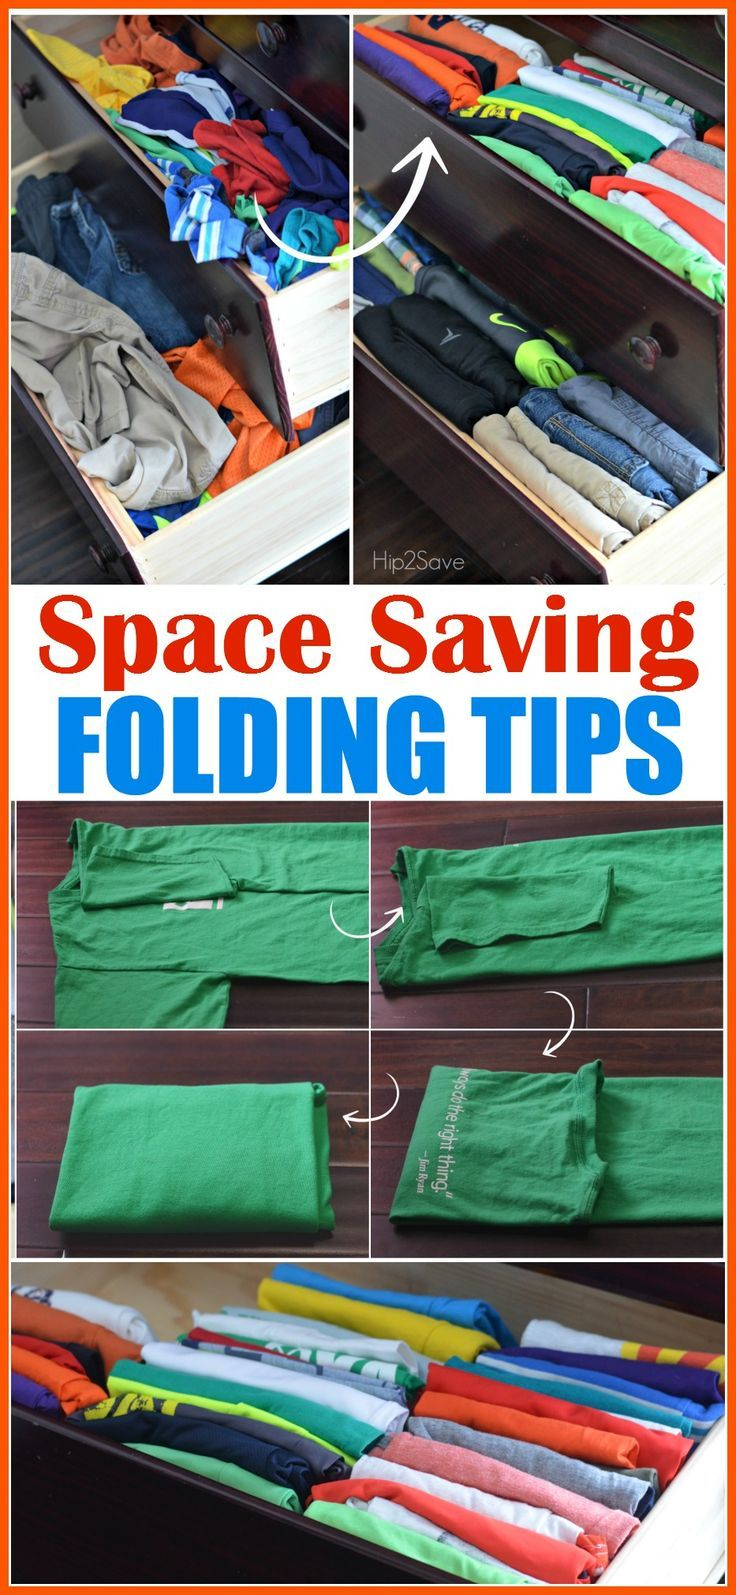 Best way to fold clothes for a trip - How To Fold Clothes To Save Space Organizing Tip Using Konmari Folding Method